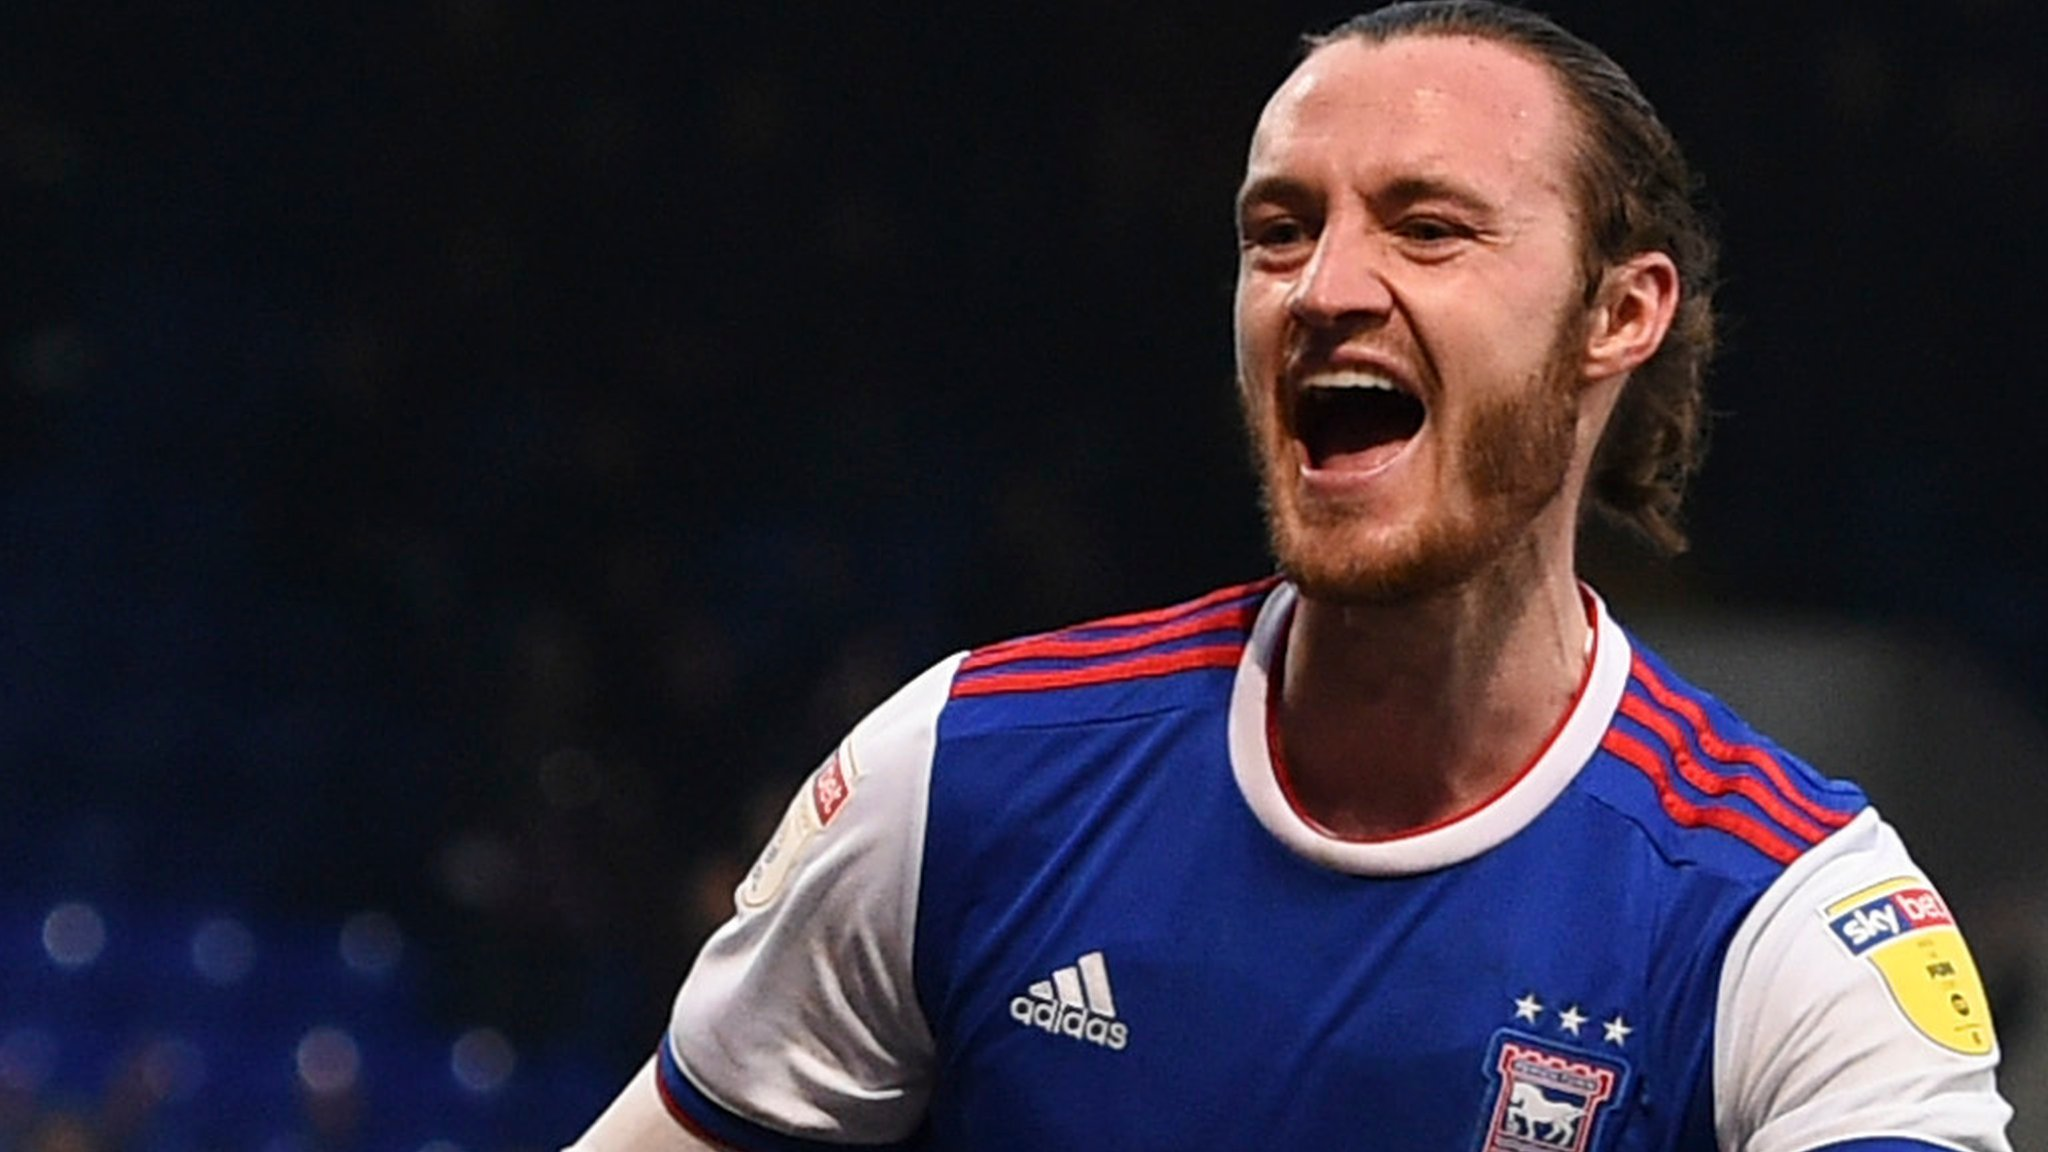 Ipswich Town 1-1 Stoke City: Late Will Keane goal rescues point for hosts